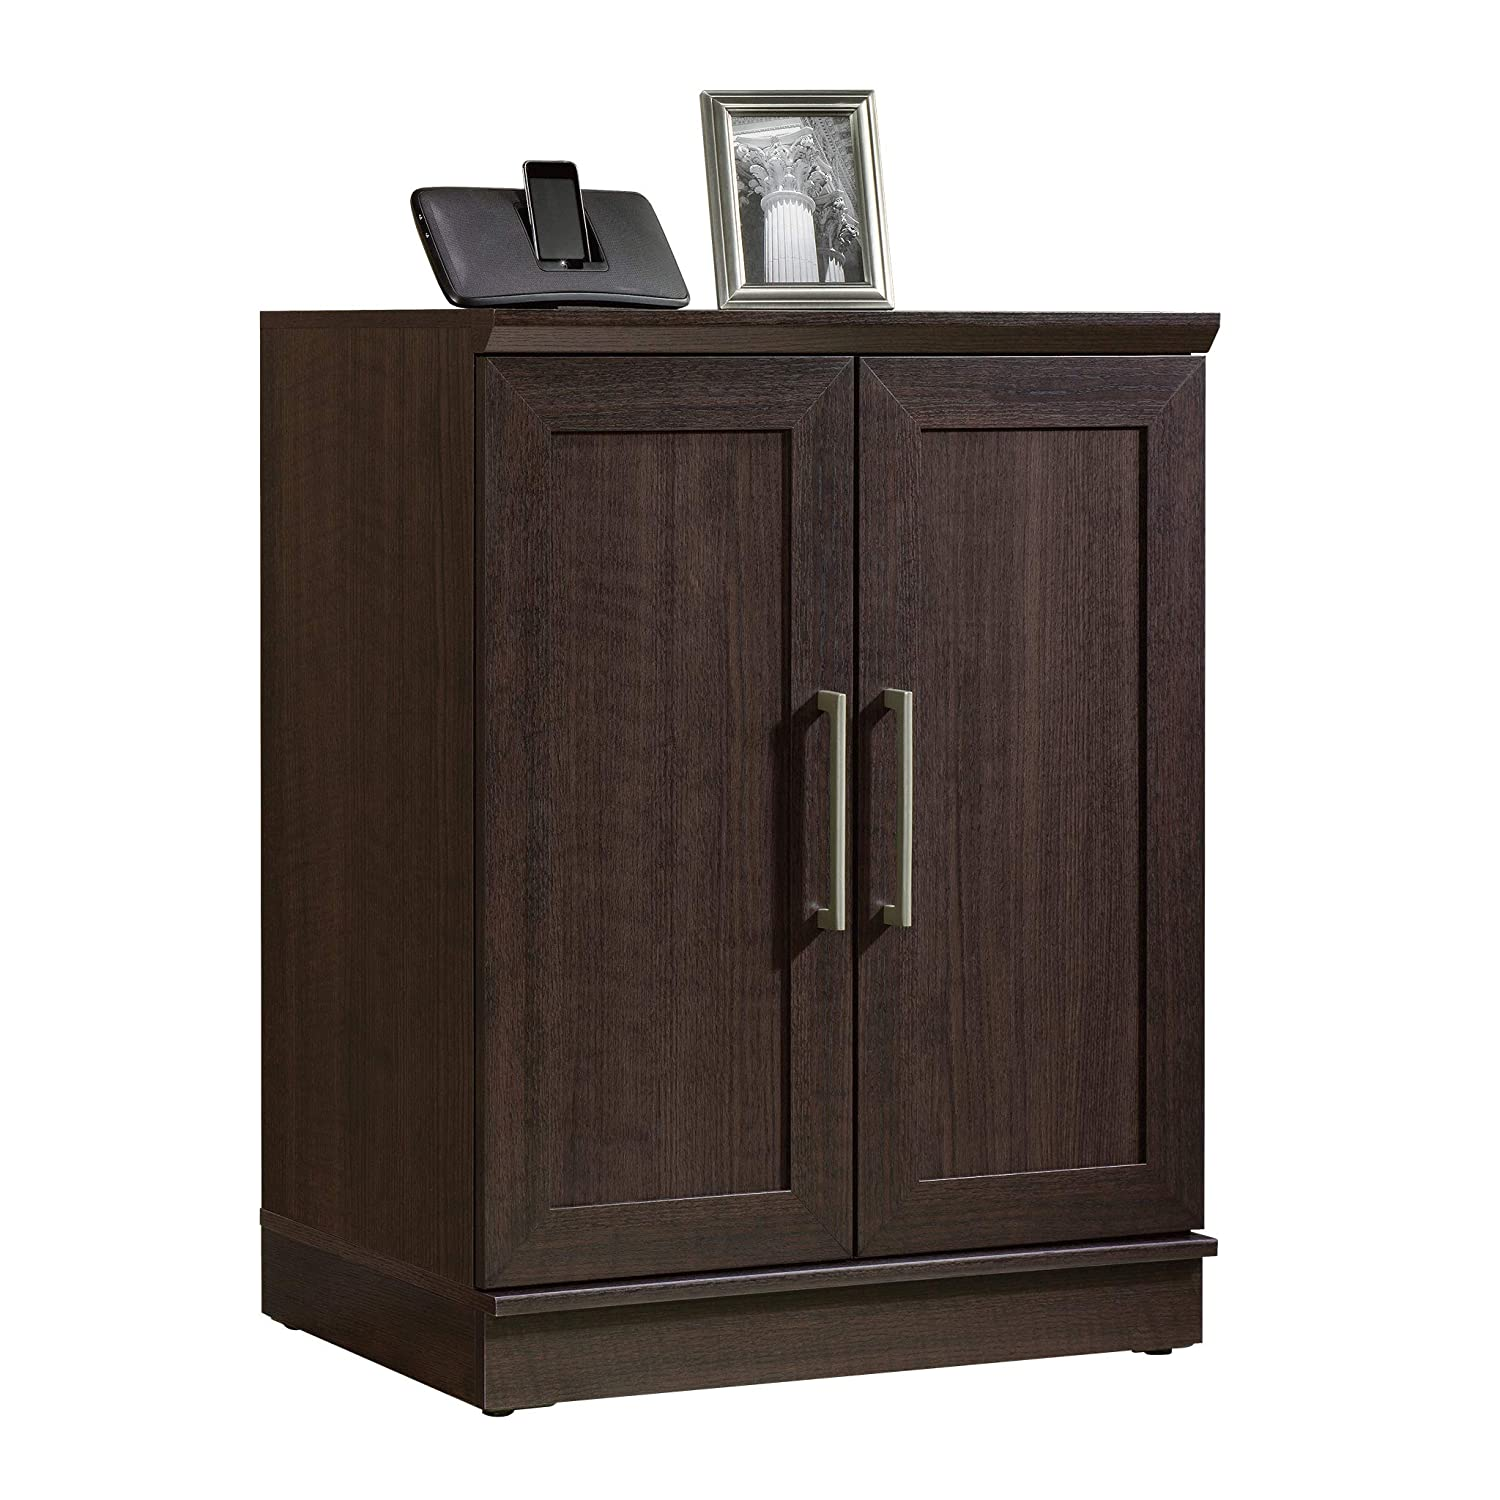 Oak Sauder HomePlus Base Cabinet, Sienna Oak Finish